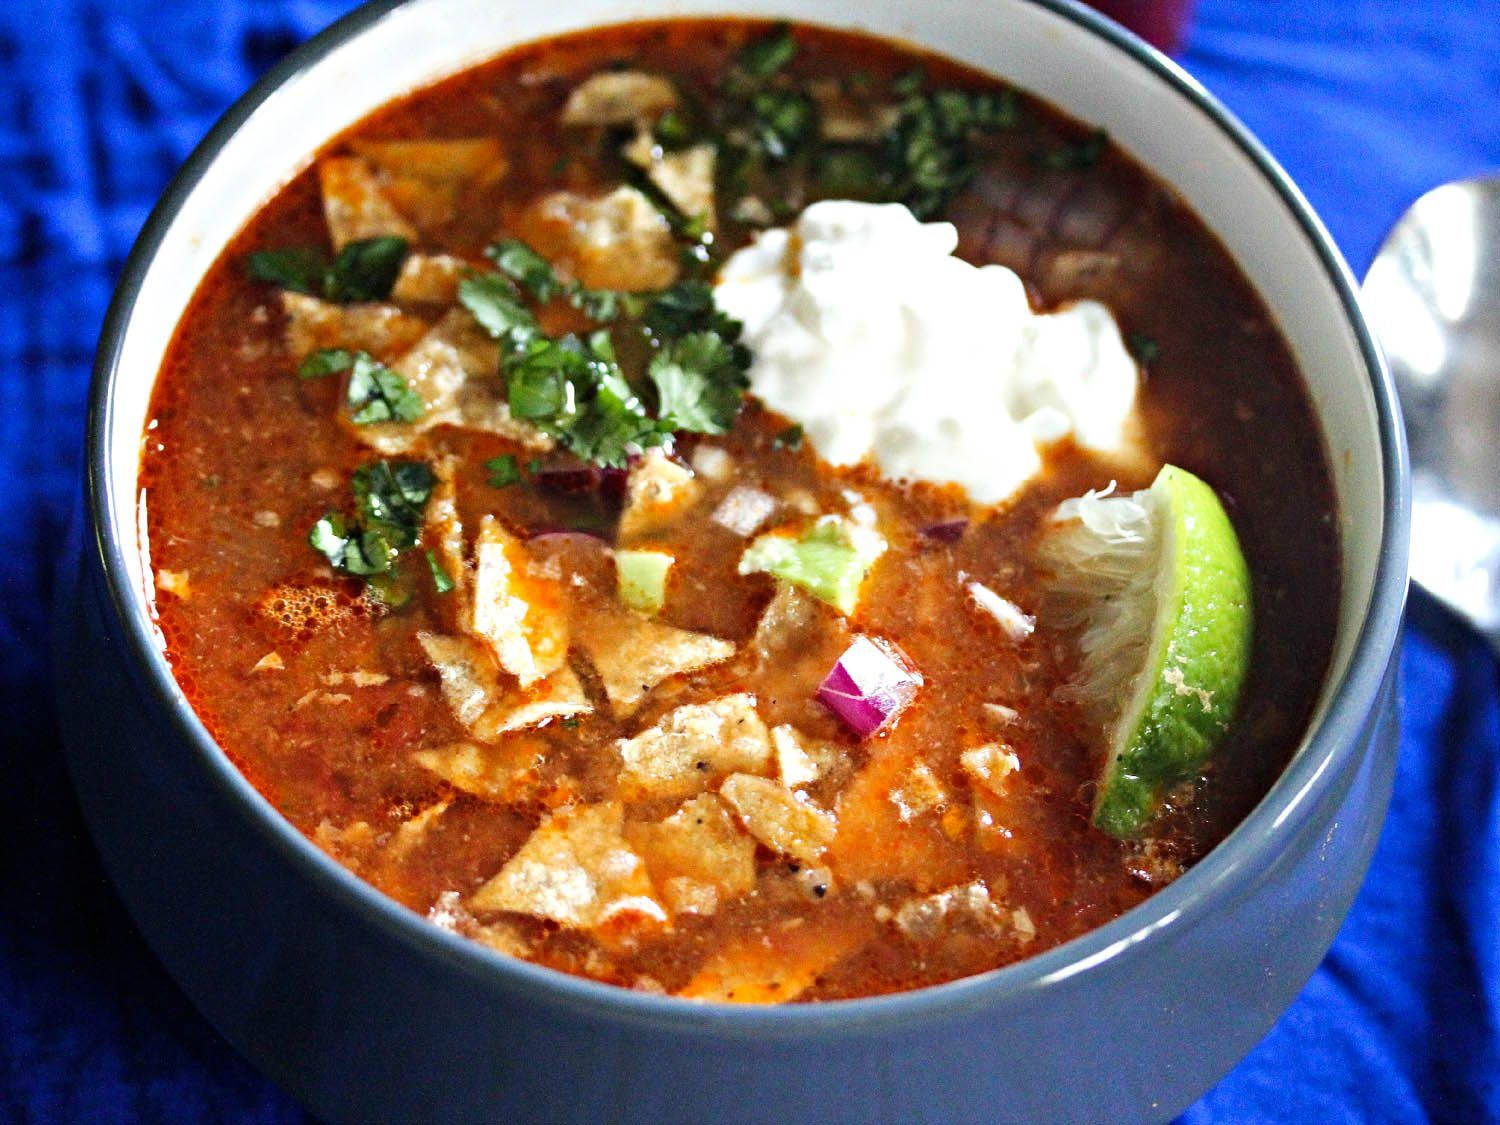 Slow Cooker Chicken Tortilla Soup With All The Fixings Recipe Recipe Slow Cooker Chicken Tortilla Soup Soup Recipes Slow Cooker Chicken Tortilla Soup